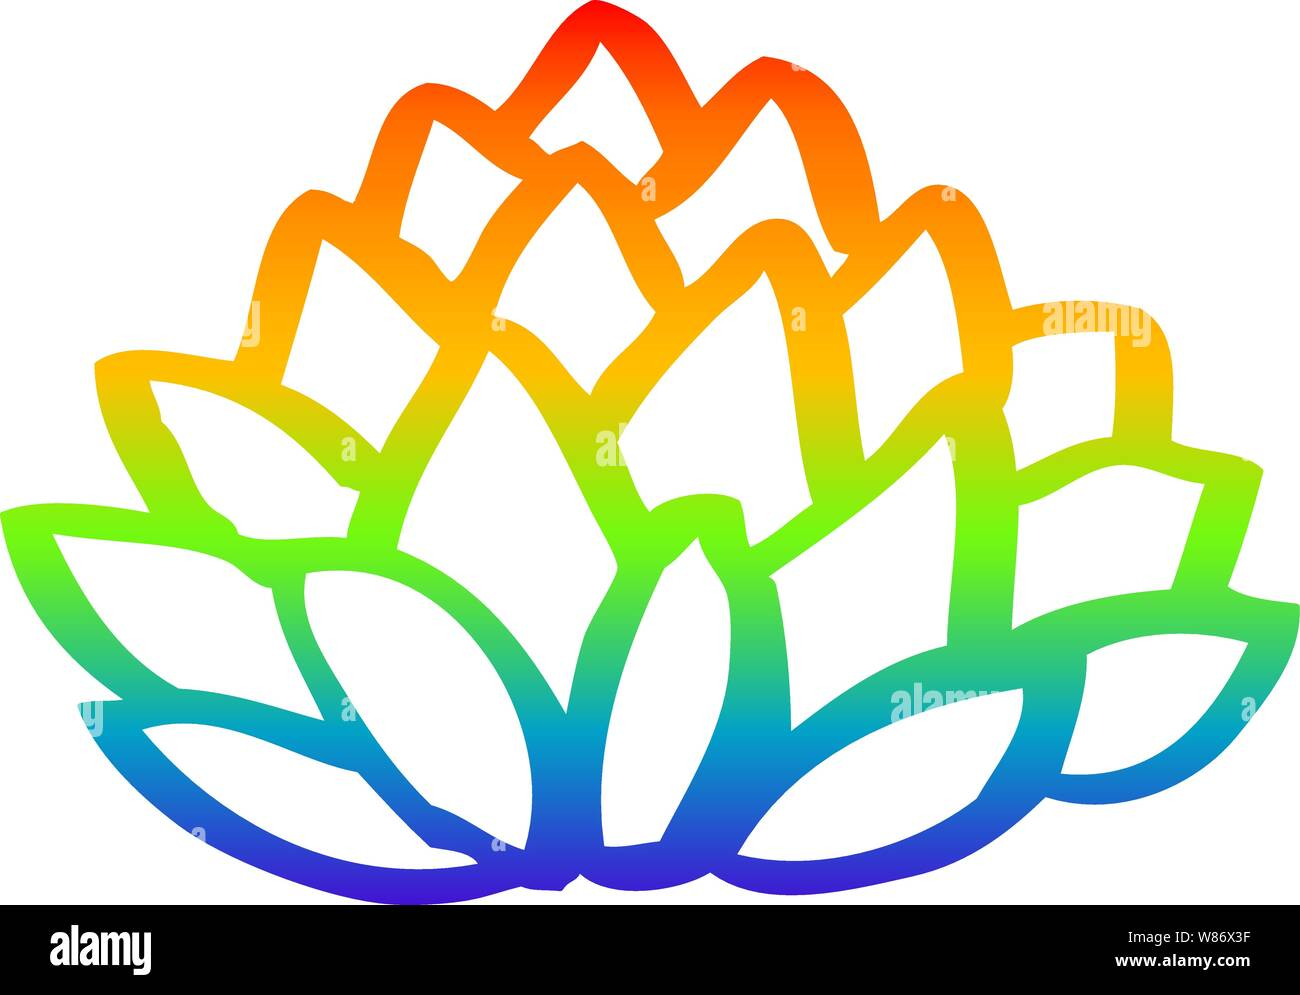 Rainbow Gradient Line Drawing Of A Cartoon Pile Of Leaves Stock Vector Image Art Alamy